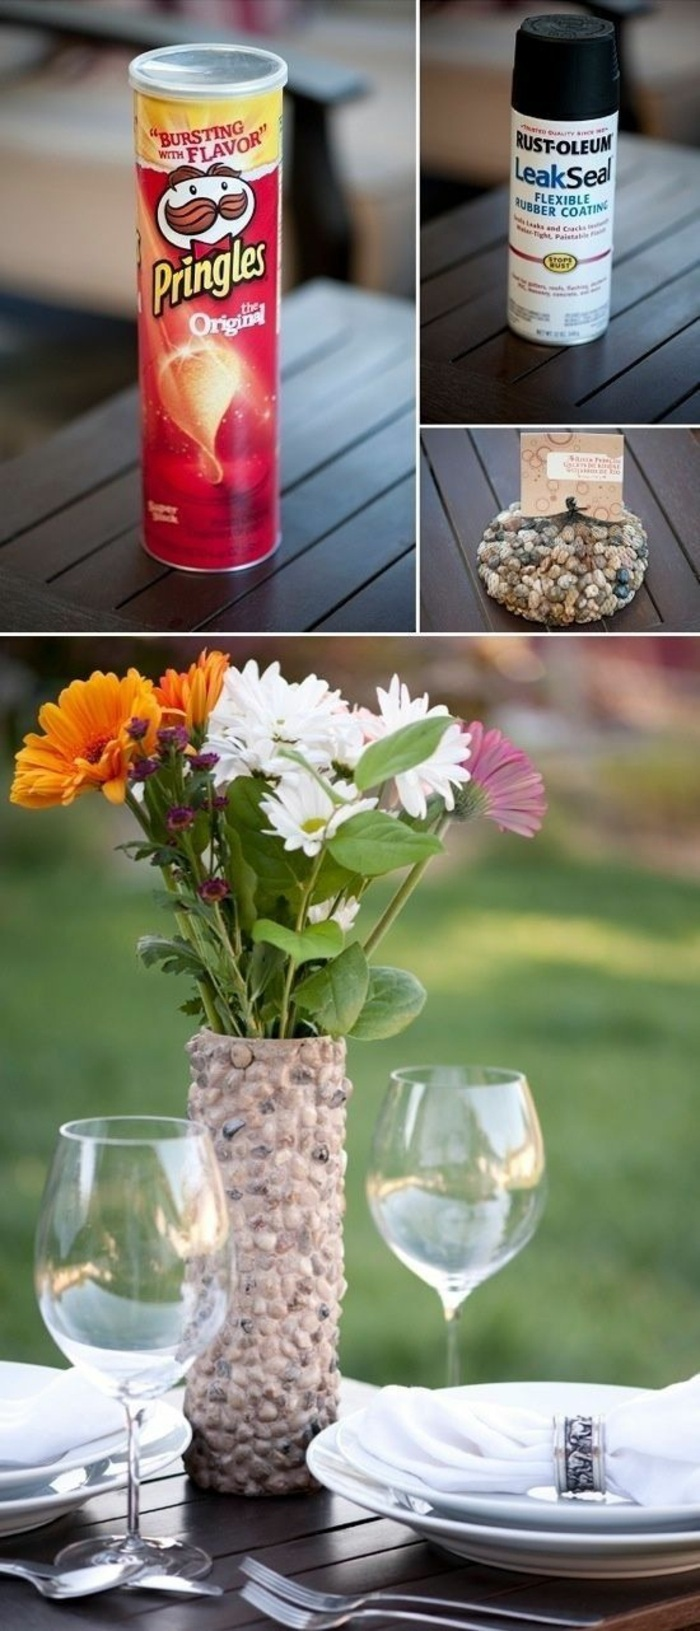 pebble rocks, pringles can, crafts to do at home, bouquet of flowers, rock vase, wine glasses